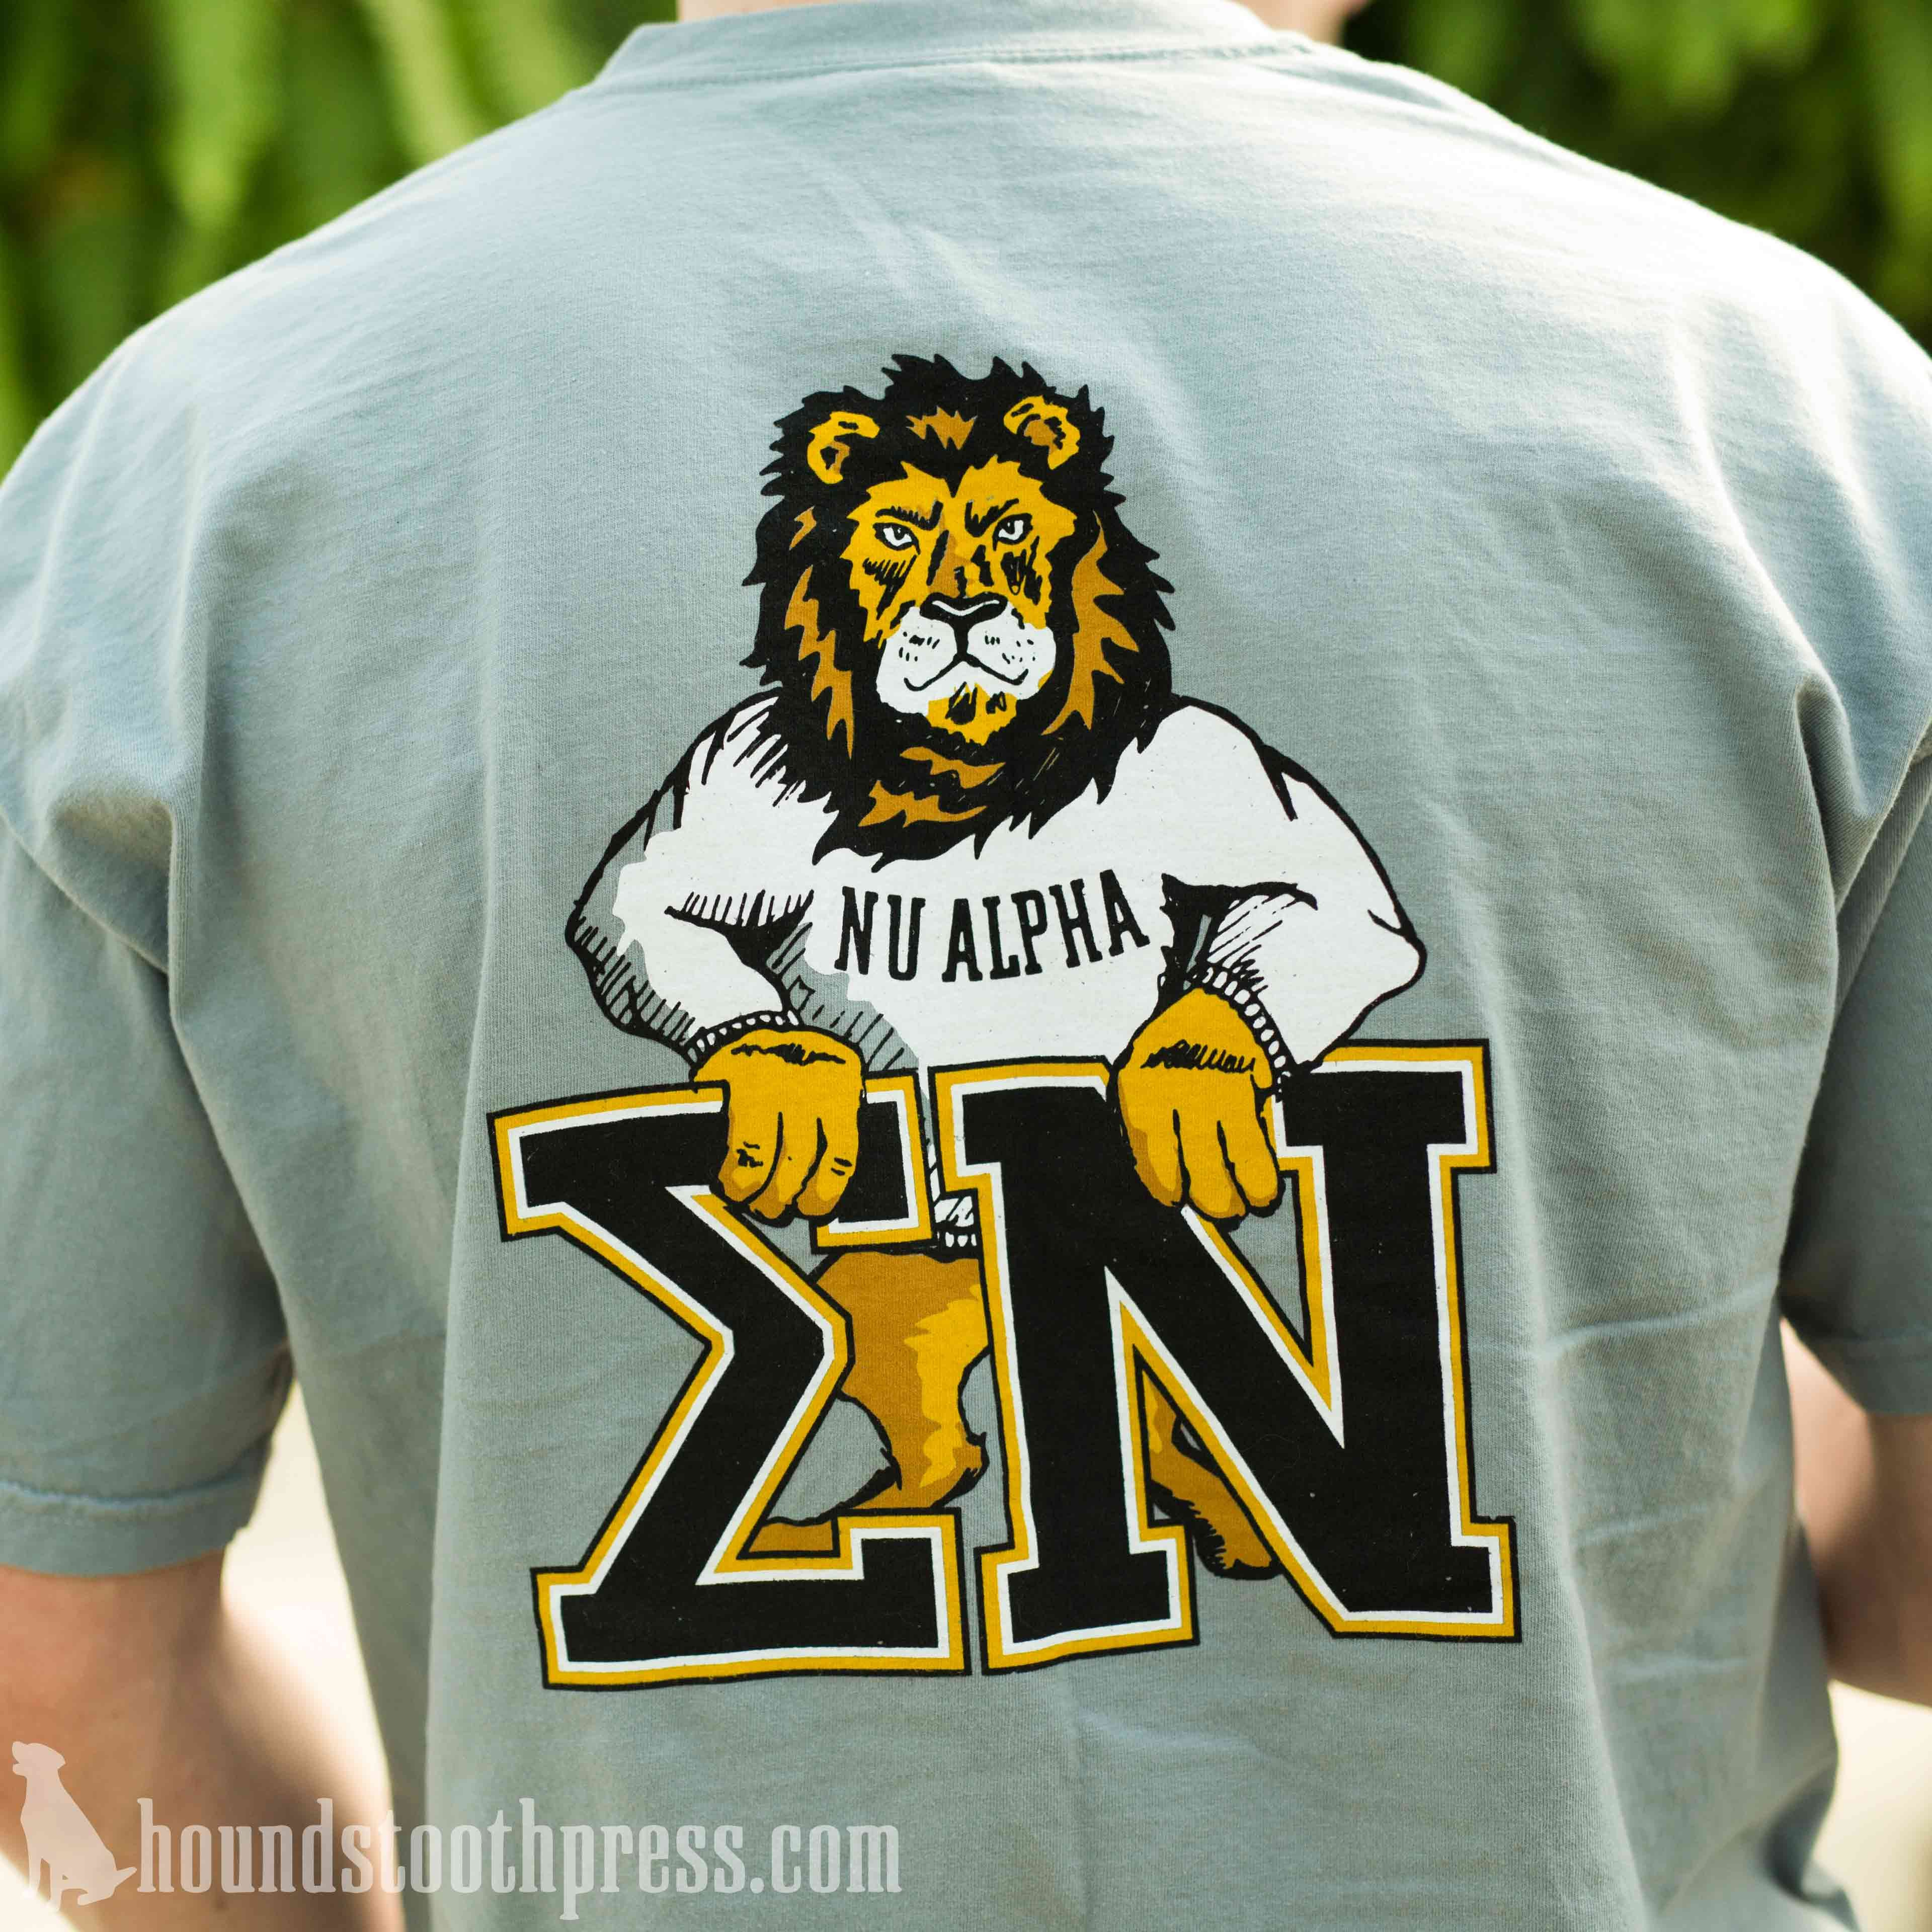 Sigma nu lion t shirt lovethelab for Southern fraternity rush shirts